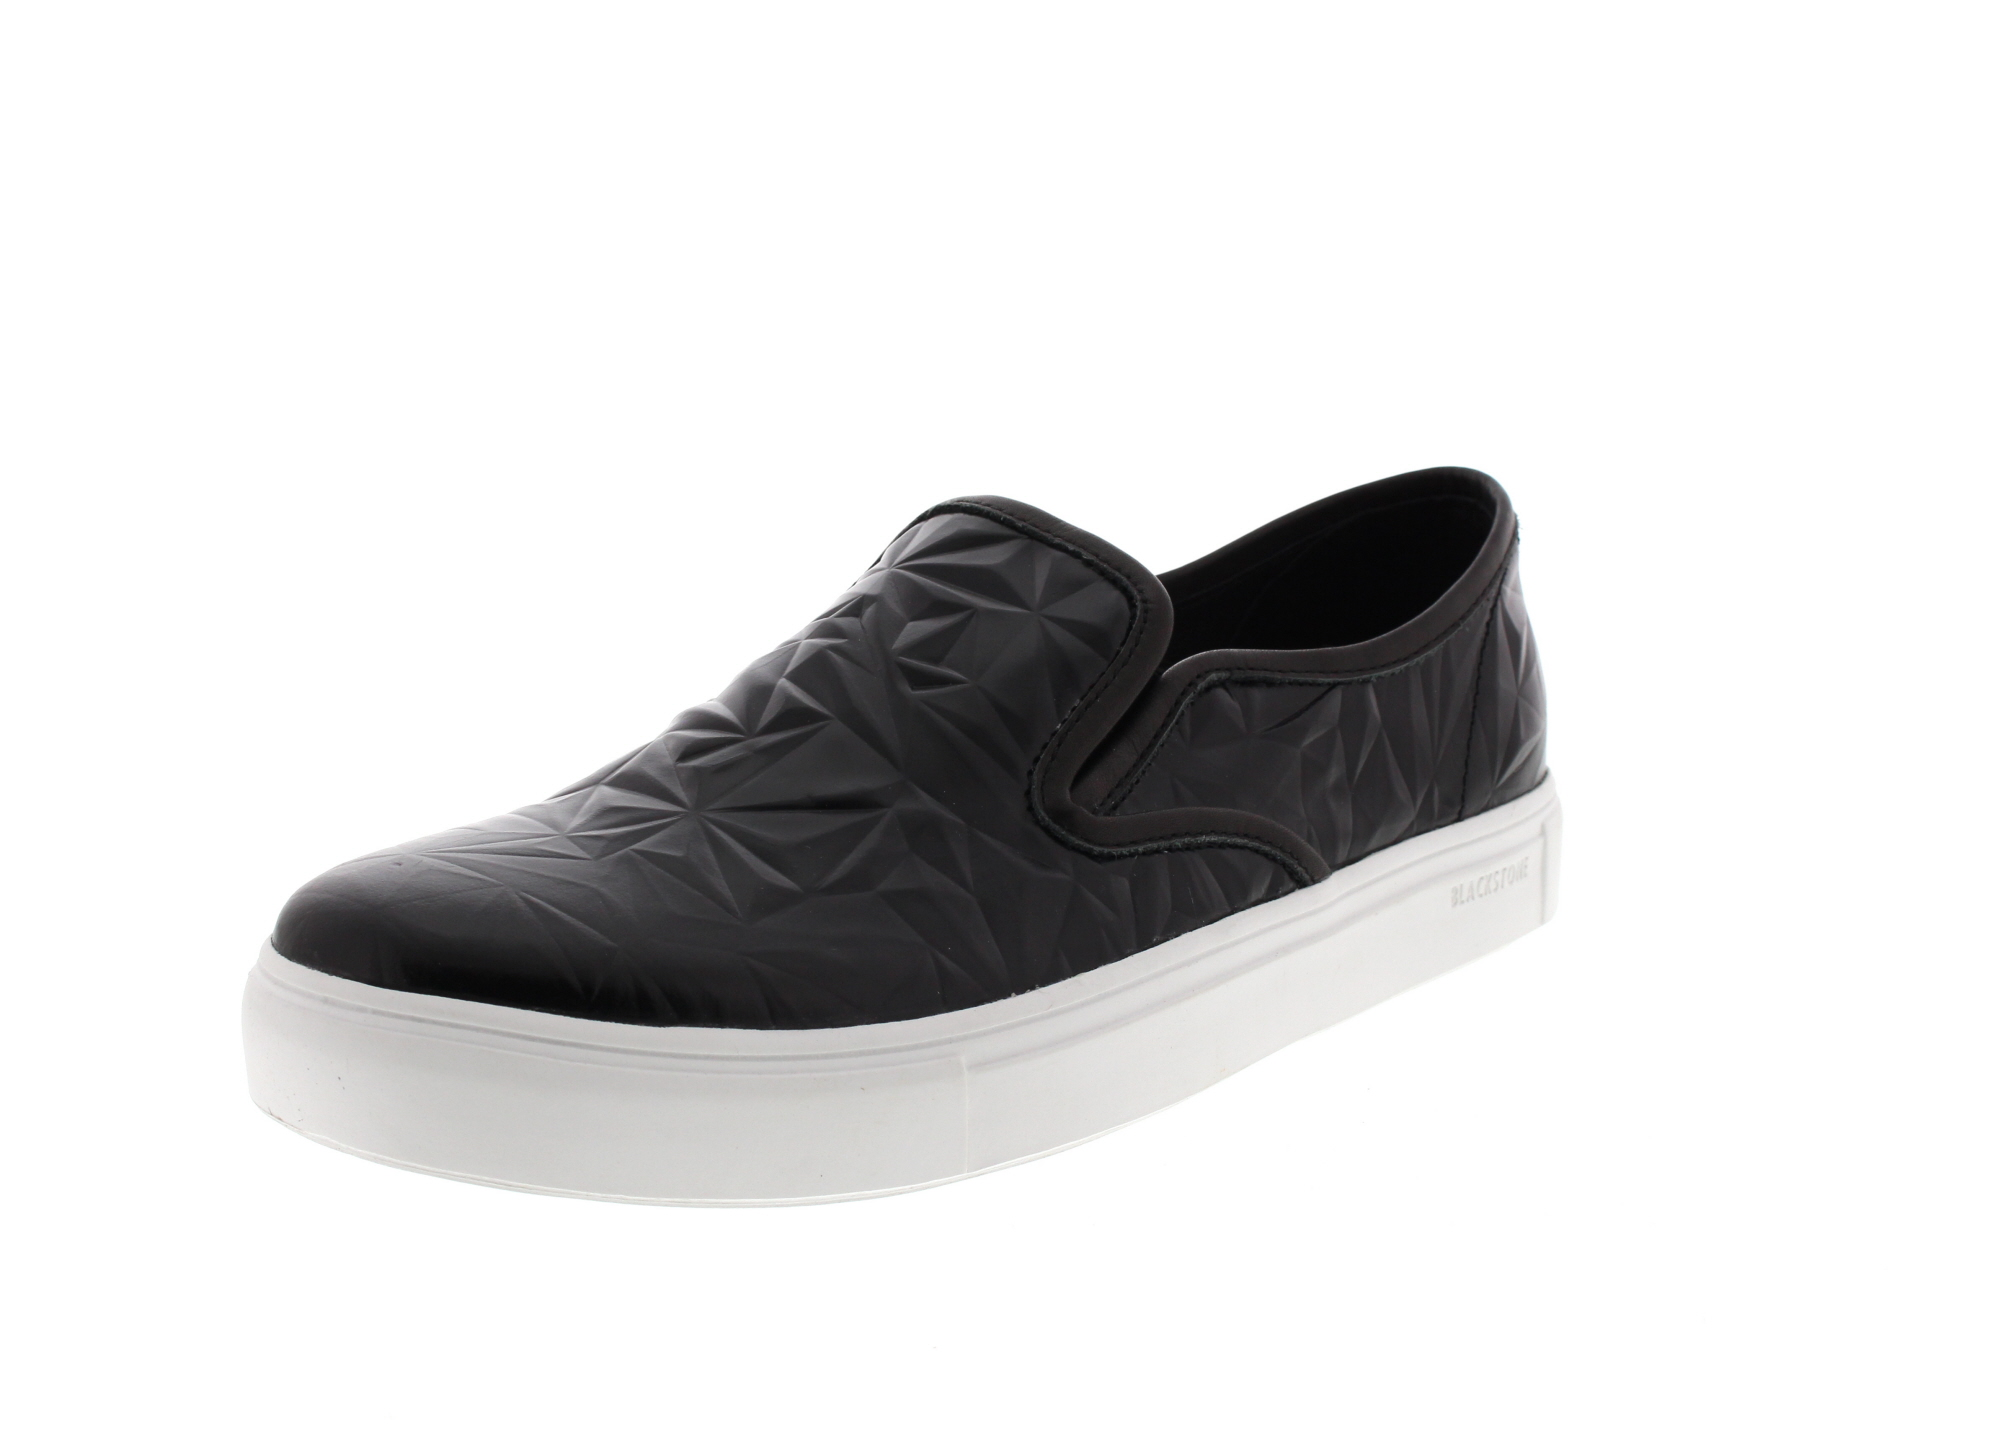 BLACKSTONE Herrenschuhe - Sneakers NM12 - black0